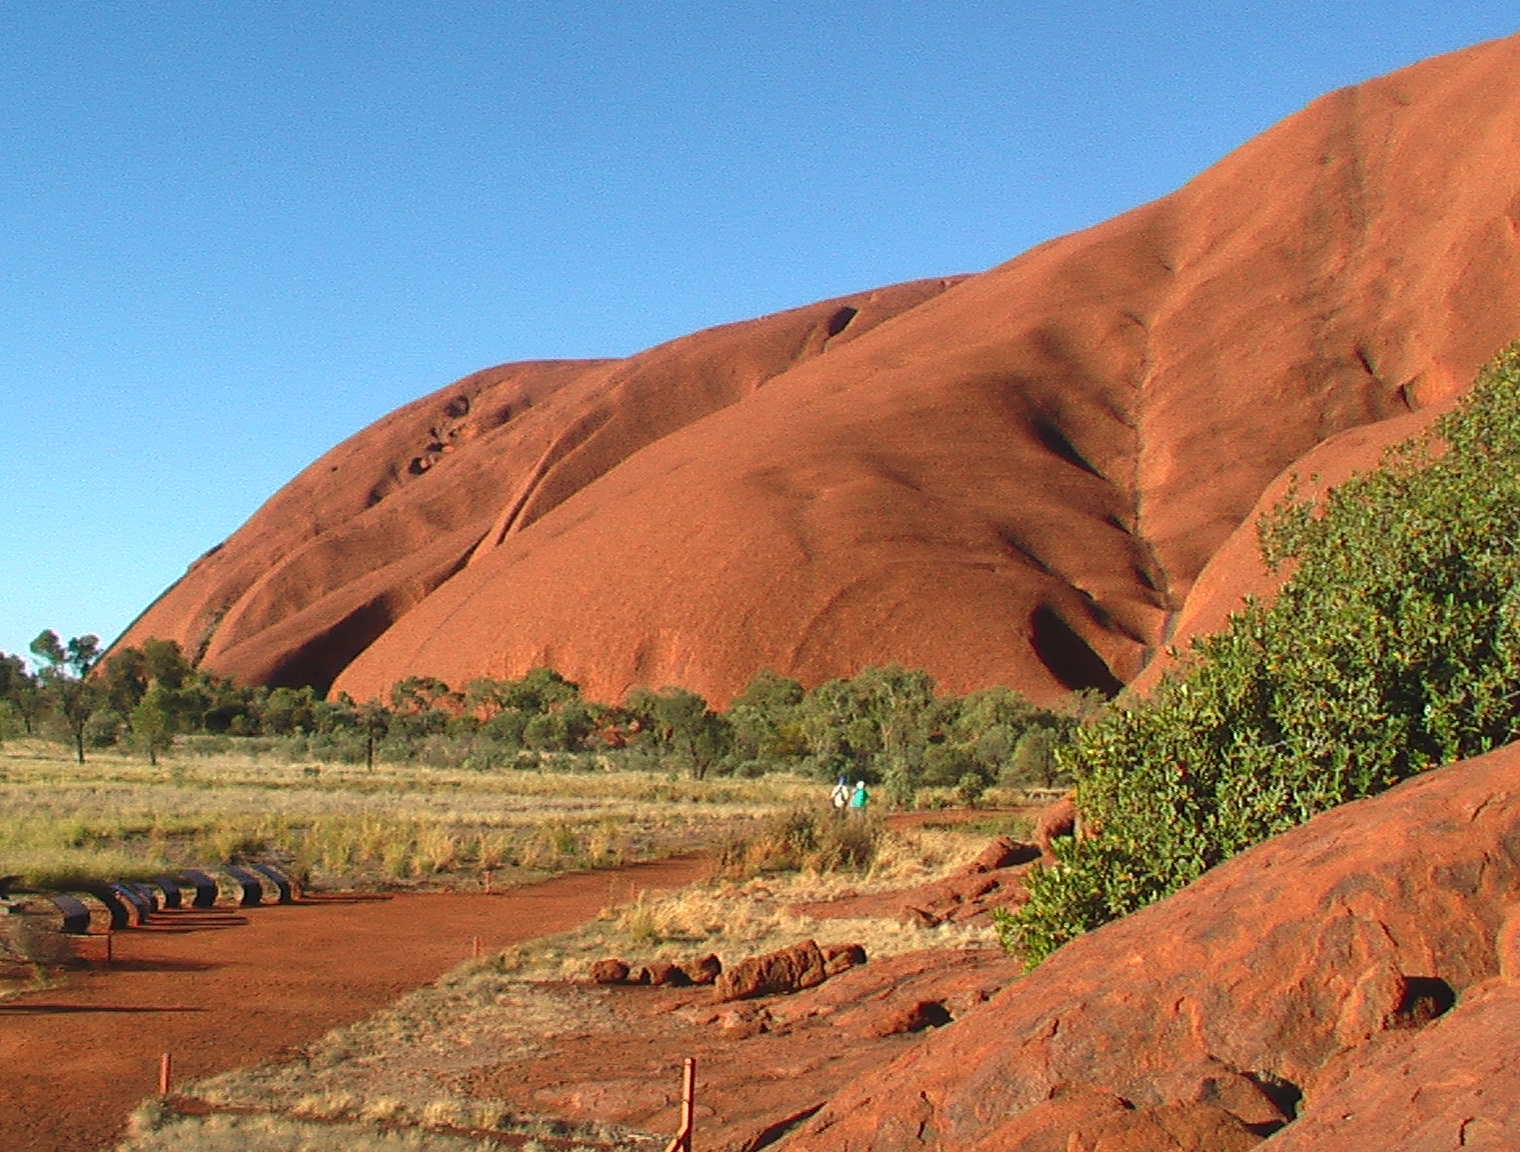 Uluru (Ayers Rock) tours